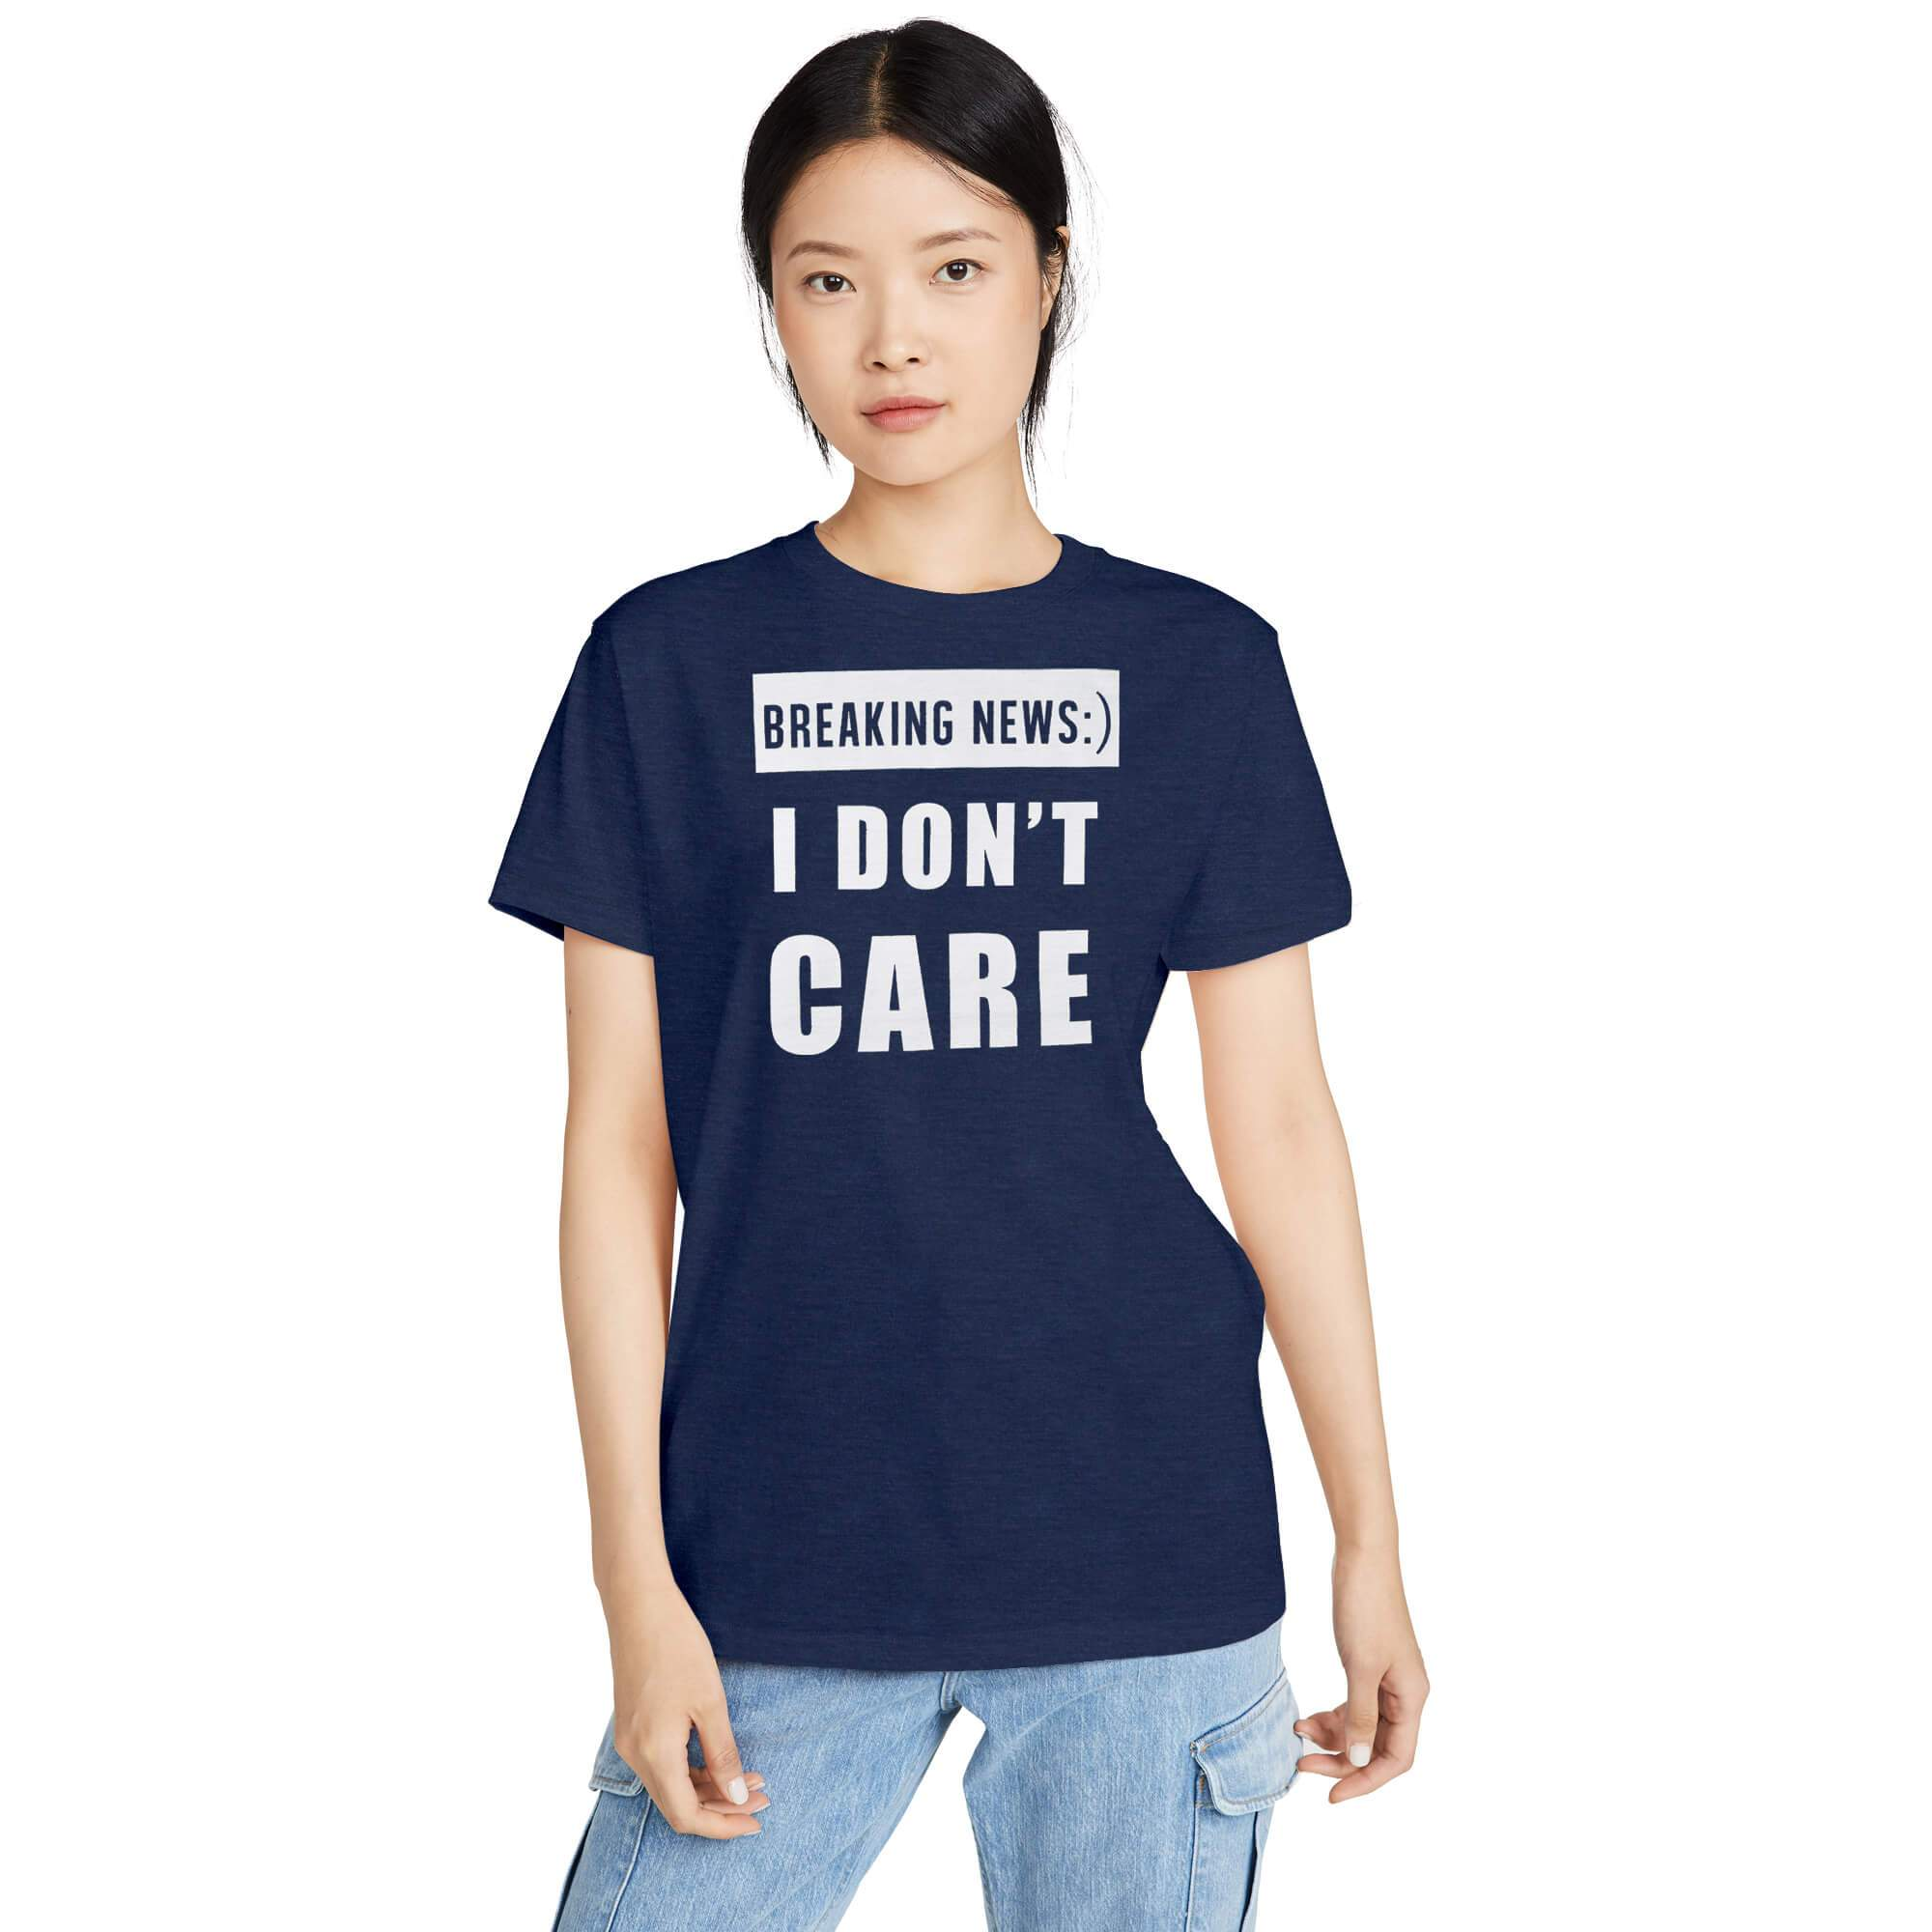 Stone Harbor Women T Shirt Navy / S-10 Women's Stone Harbor Don't Care Crew Neck Tee Shirt